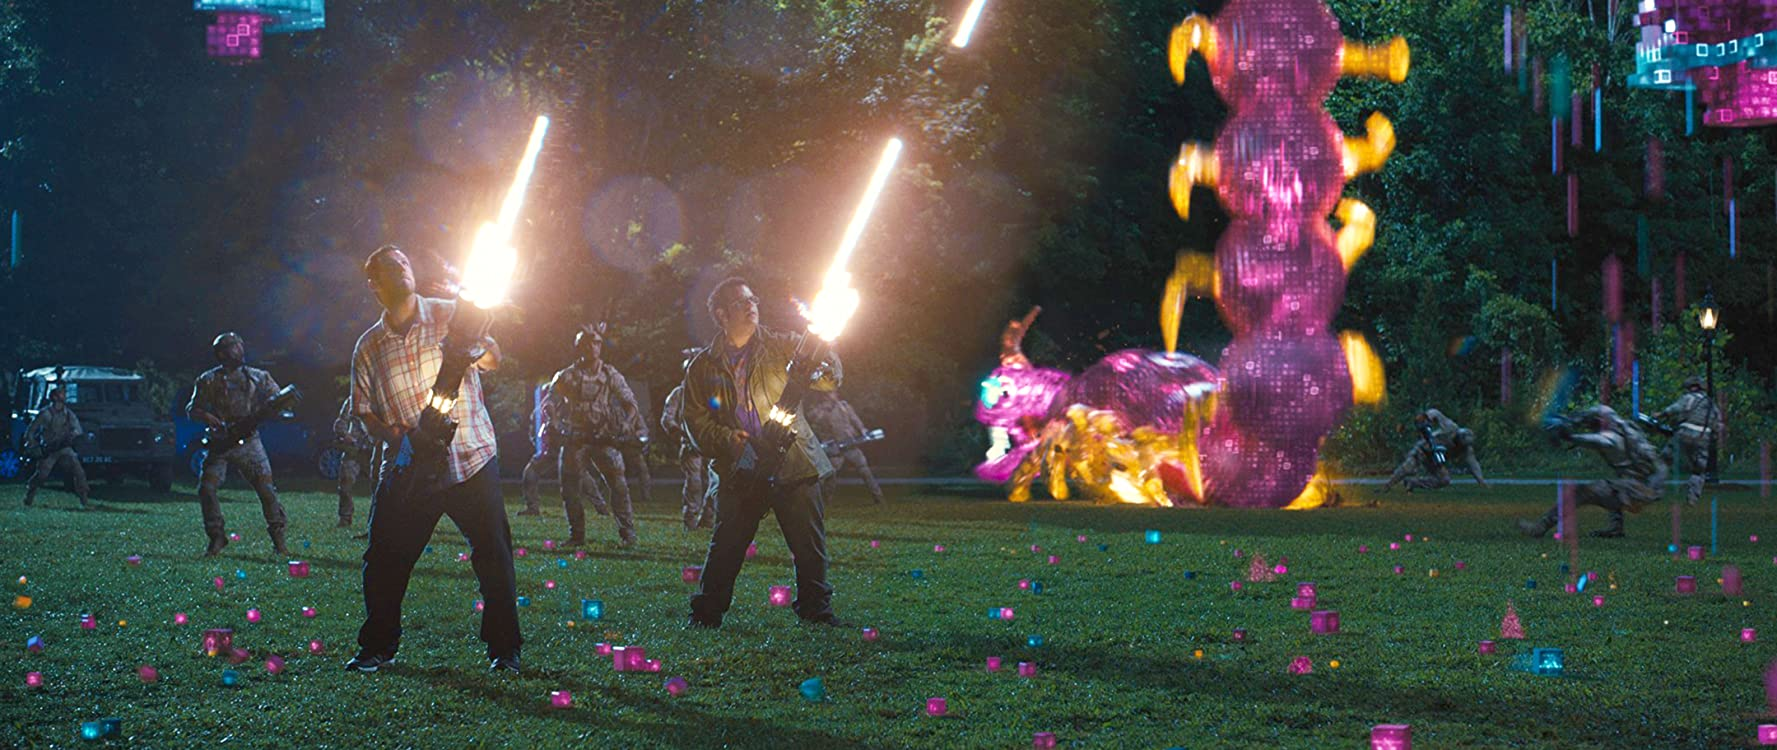 Adam Sandler and Josh Gad in Pixels (2015)